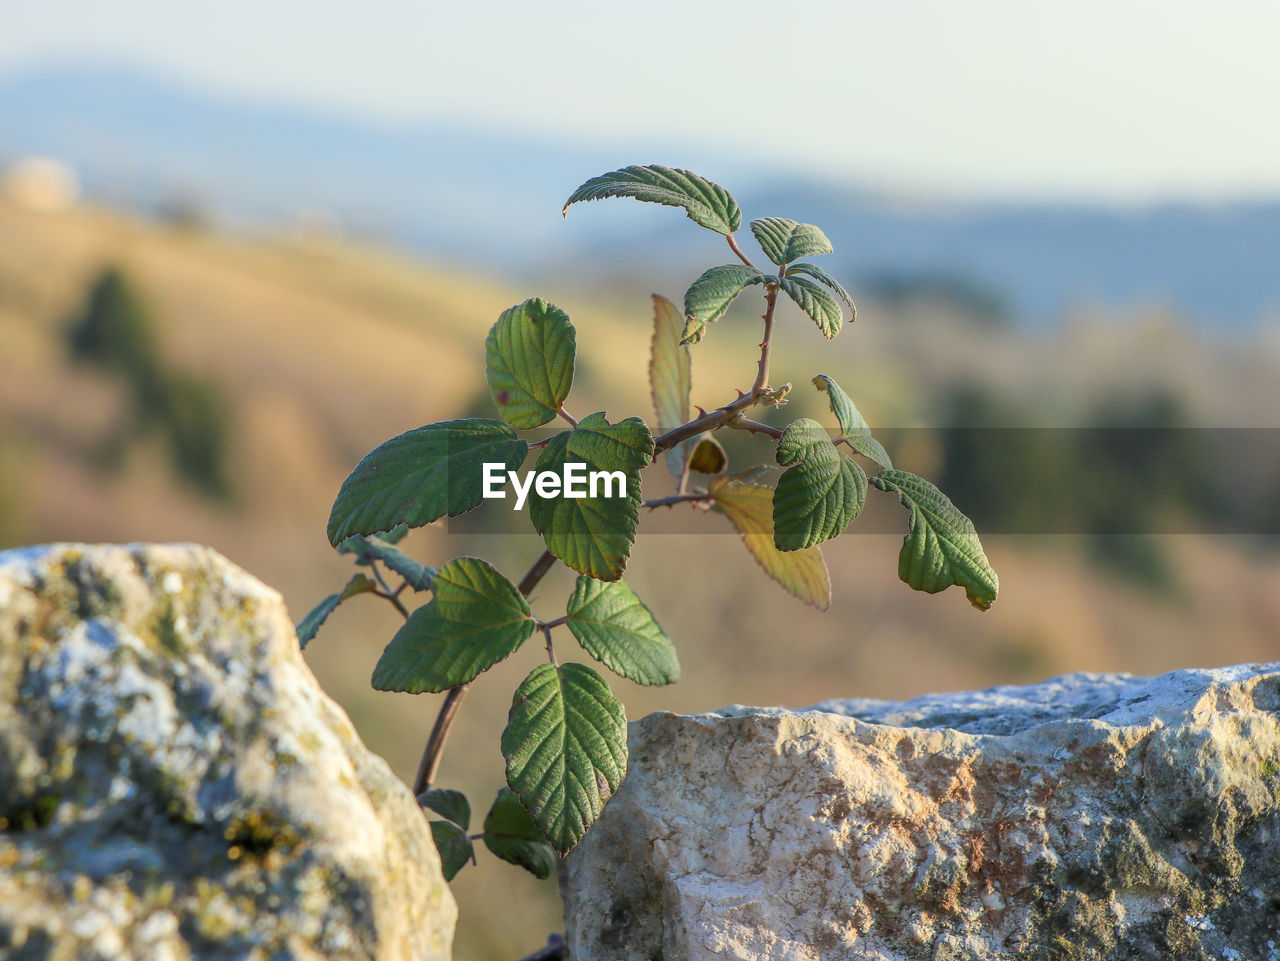 focus on foreground, growth, leaf, plant, plant part, close-up, nature, beauty in nature, no people, rock, day, rock - object, solid, outdoors, green color, freshness, selective focus, sunlight, food, botany